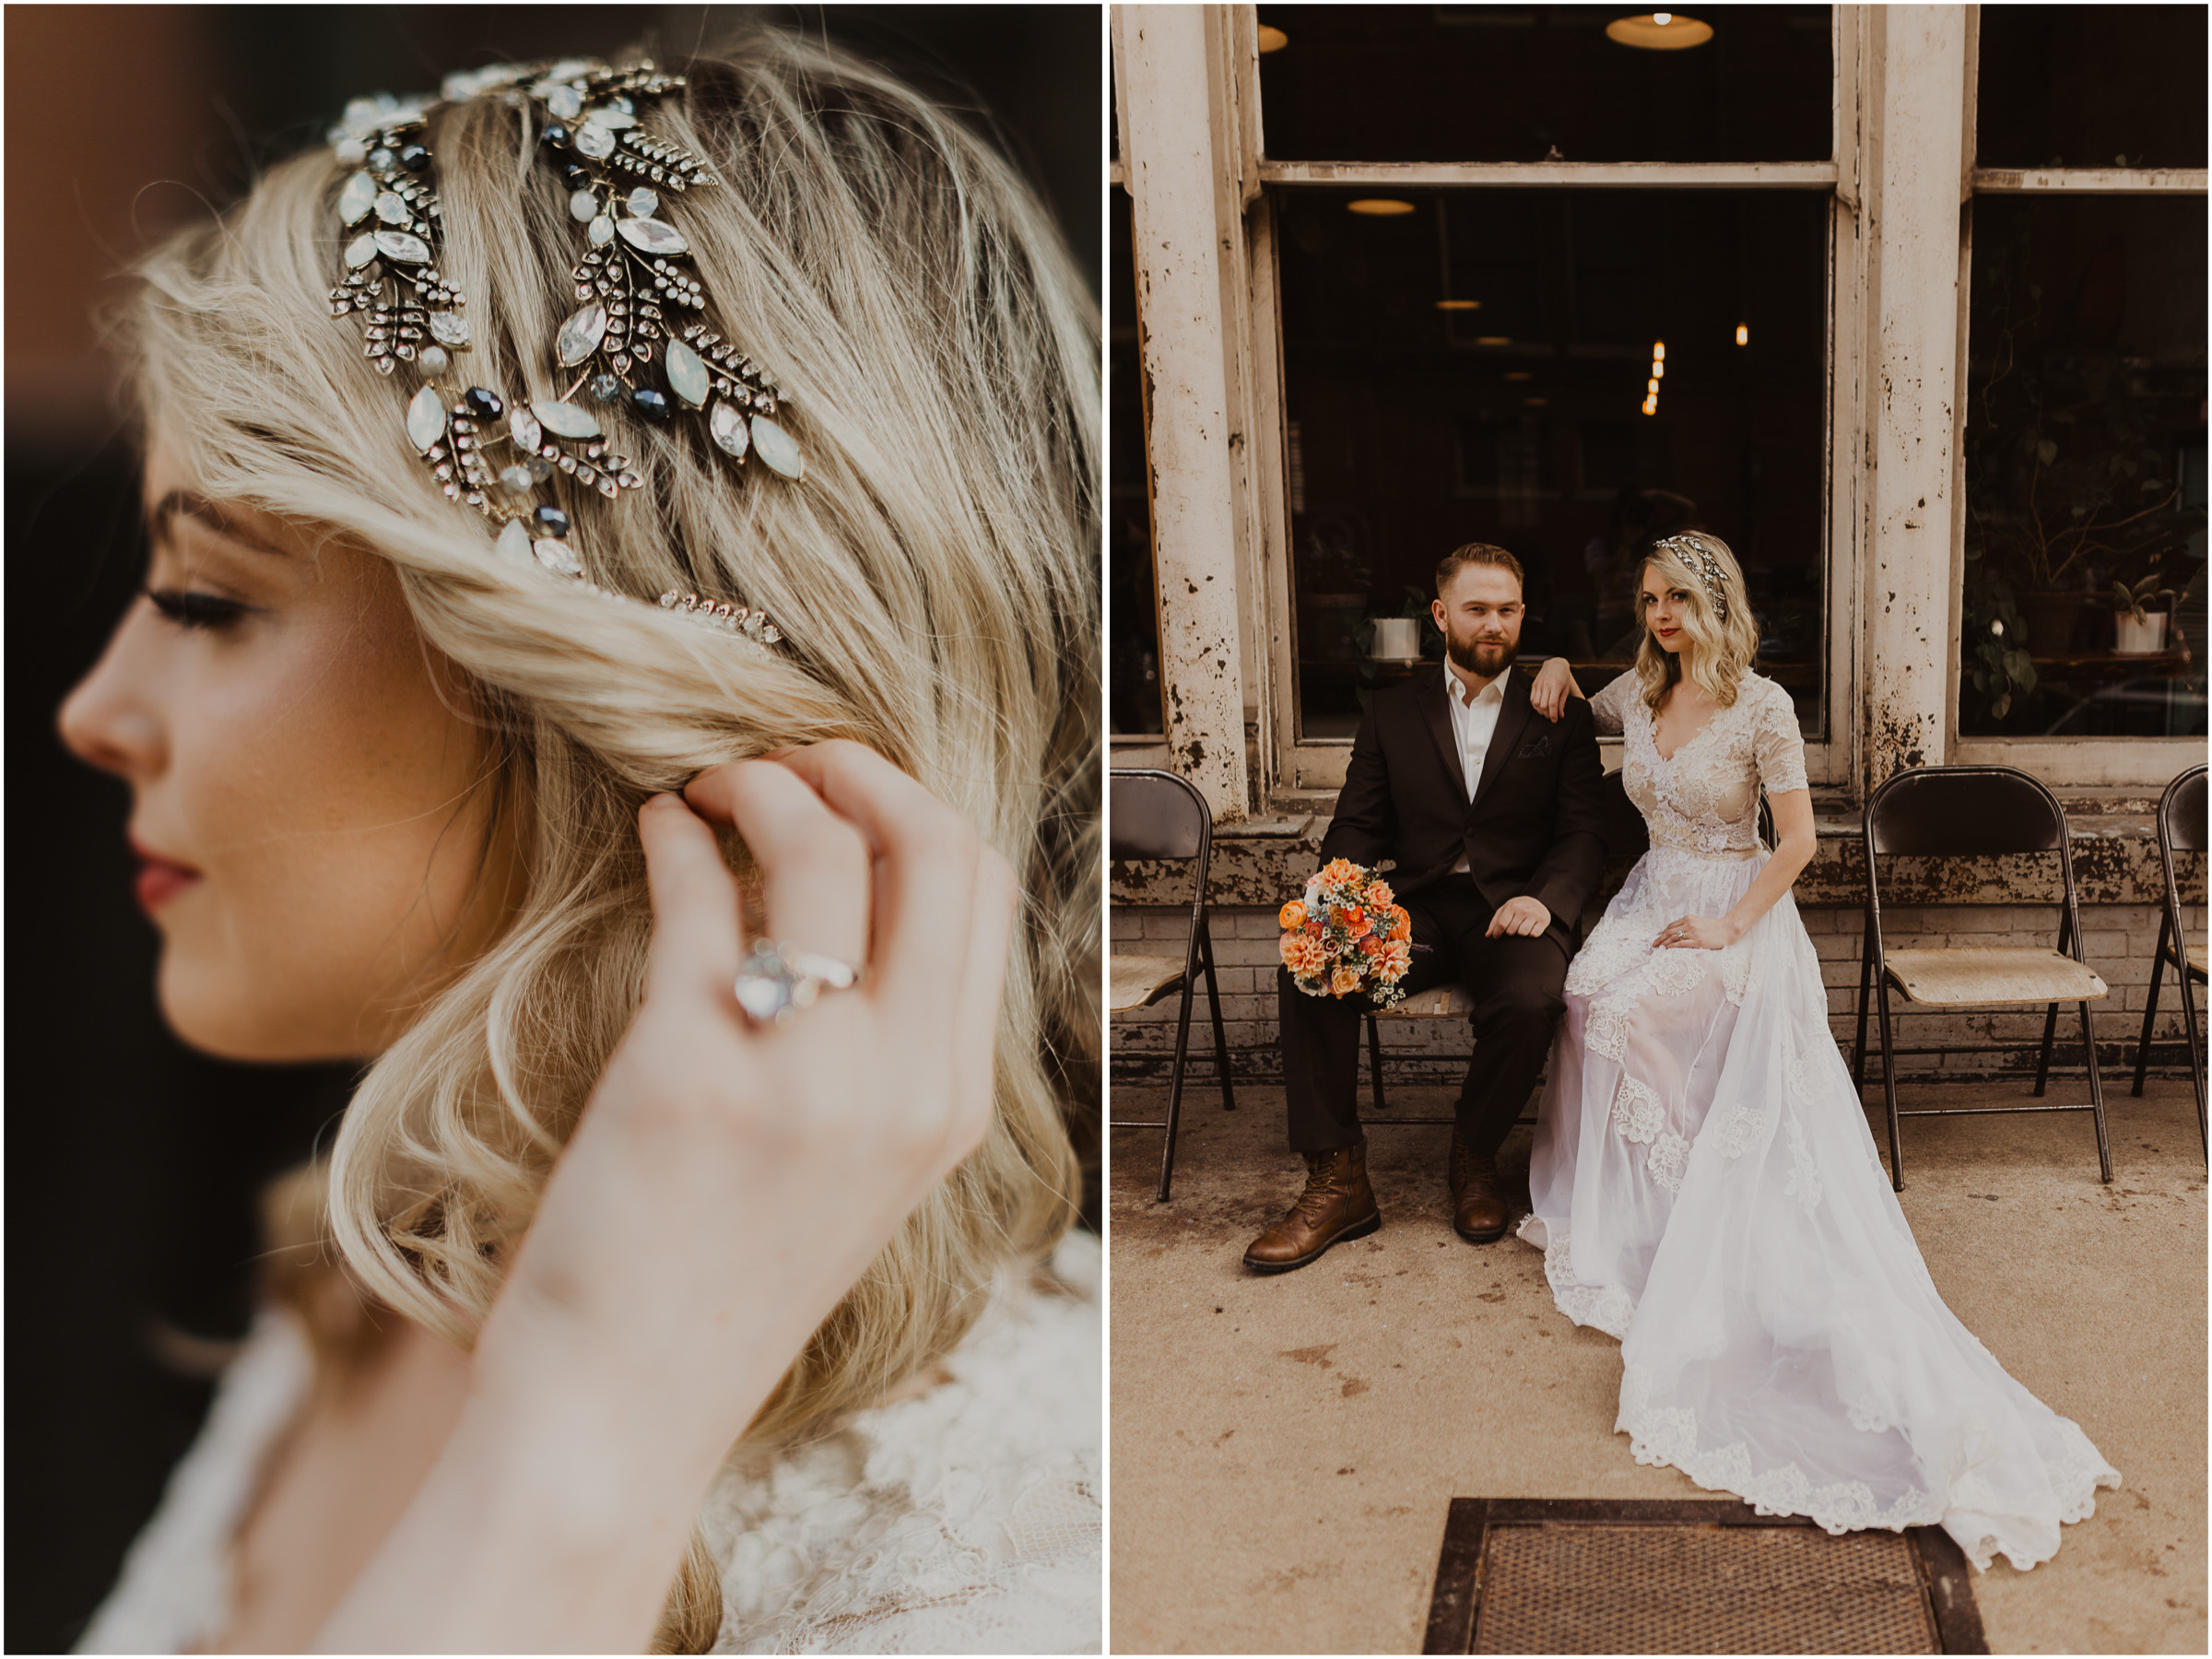 alyssa barletter photography styled shoot wedding inspiration kansas city west bottoms photographer motorcycle edgy intimate-22.jpg